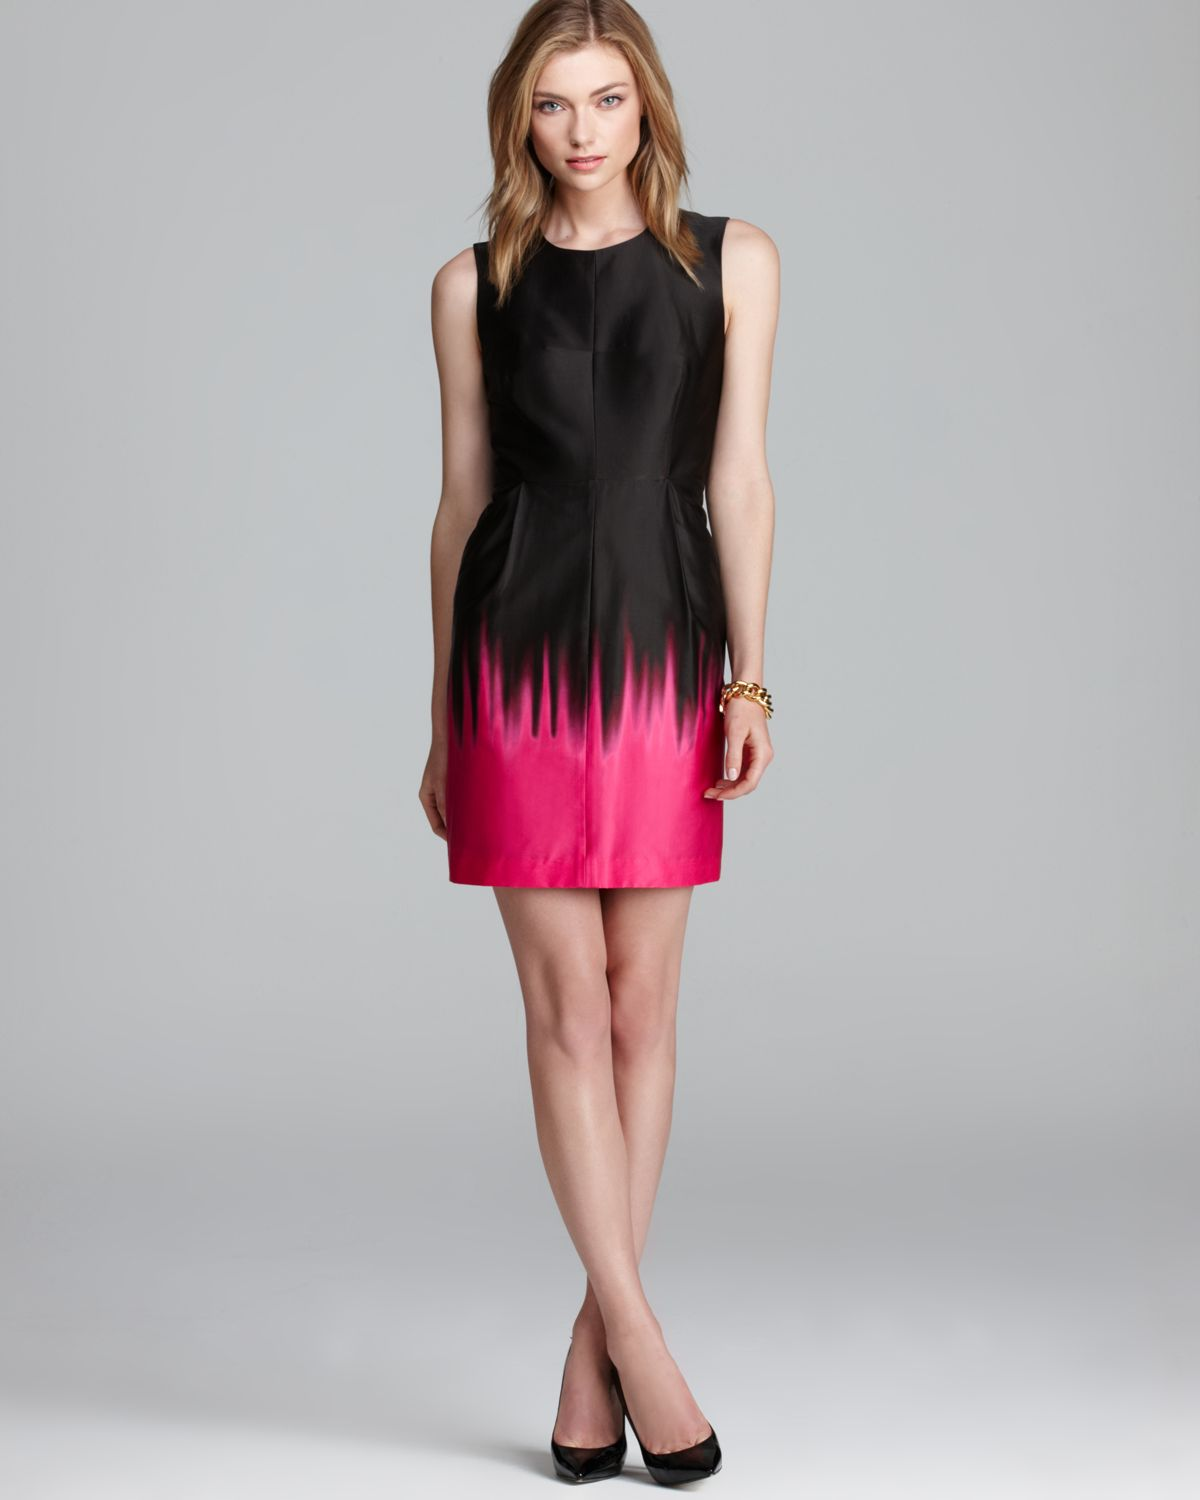 Milly Dress Coco Ombre in Black  Lyst